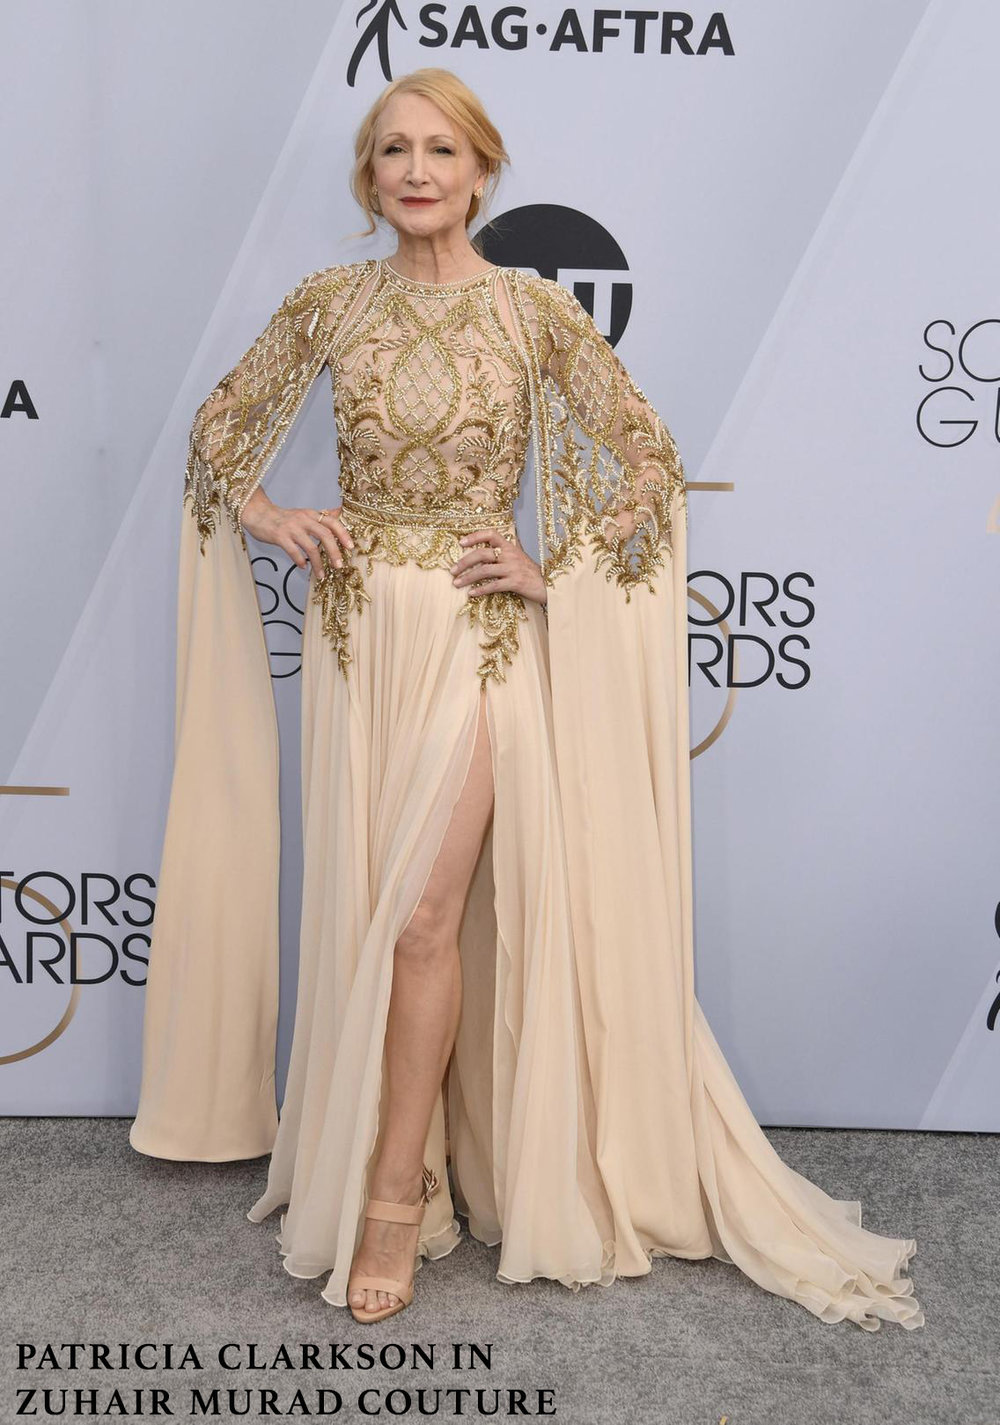 Patricia Clarkson in Zuhair Murad Couture- Gold & Nude-1.jpg